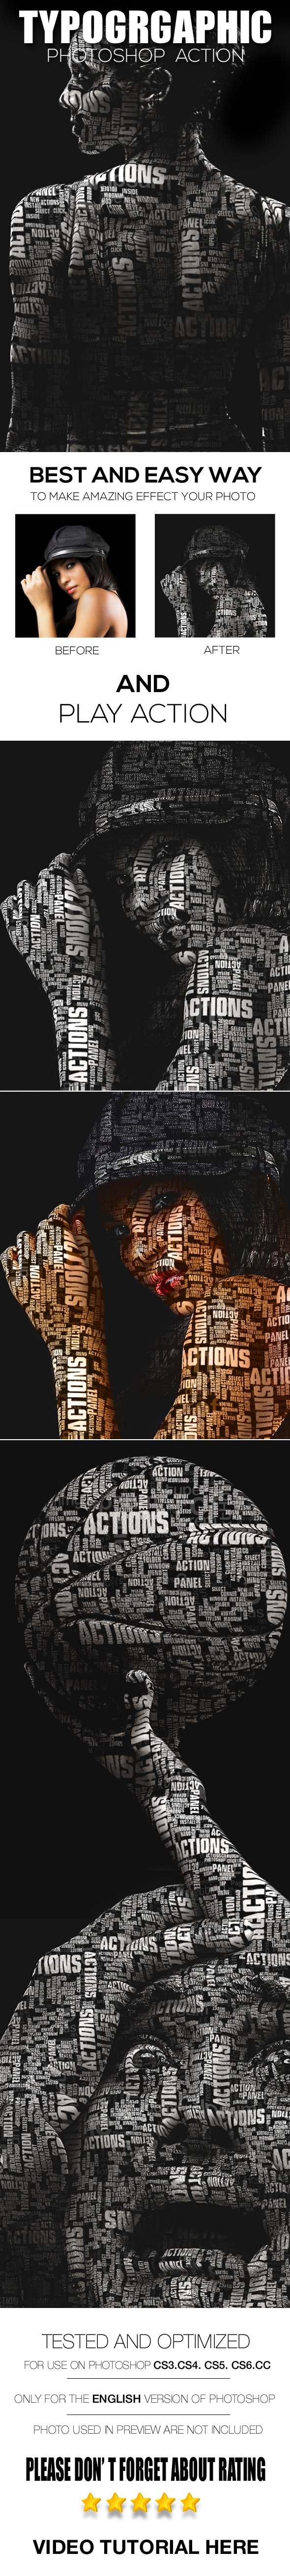 Typographic Photoshop Action - Photo Effects Actions